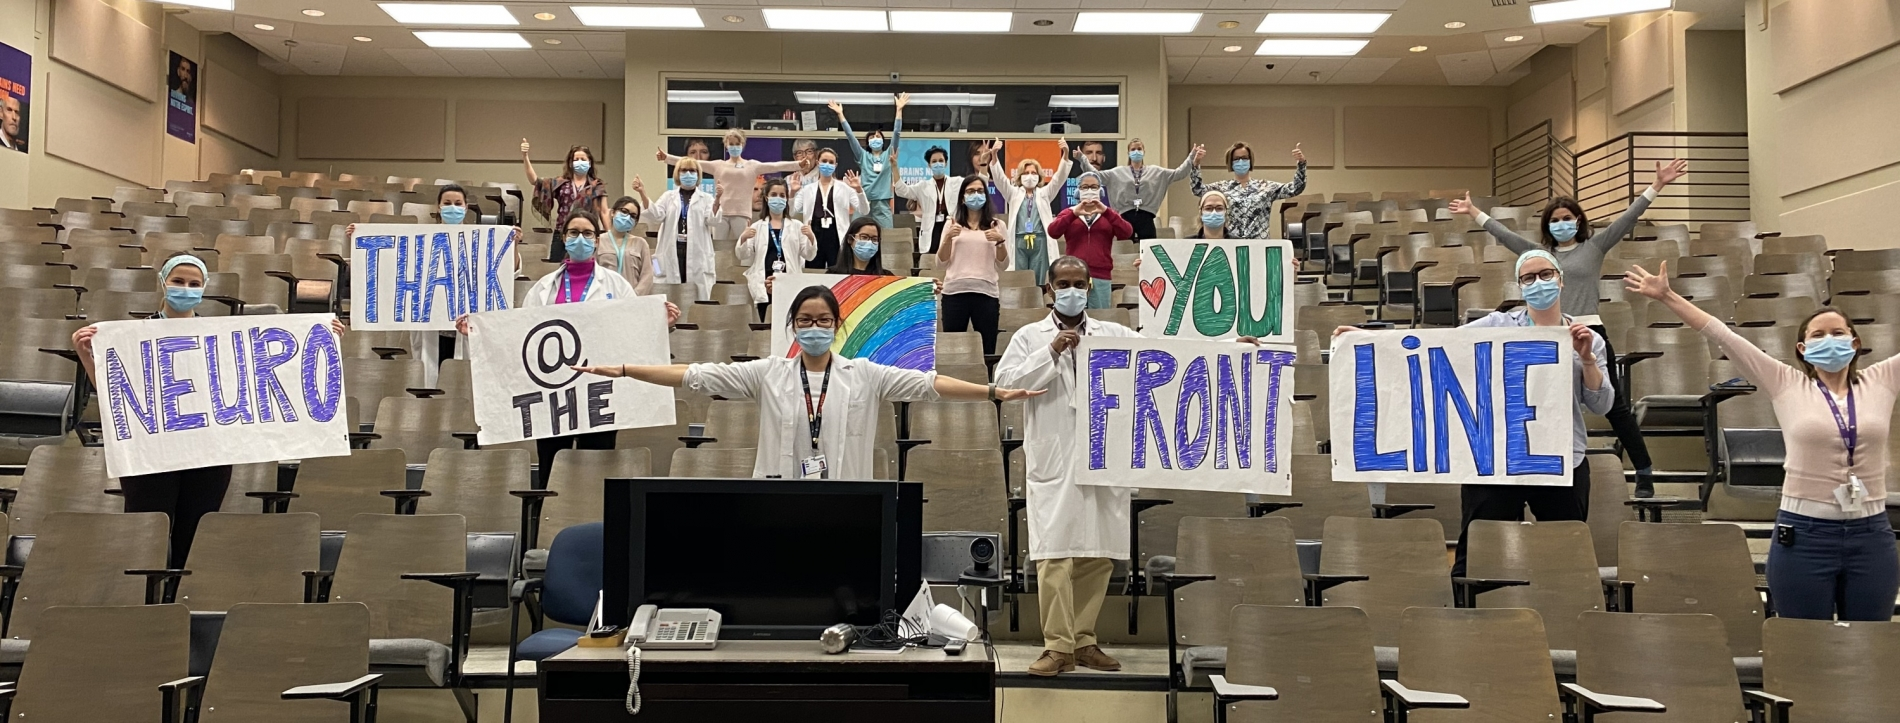 """The Neuro Frontline Staff in the Jeanne Timmins Ampitheatre holding up """"Thank You"""" signs"""